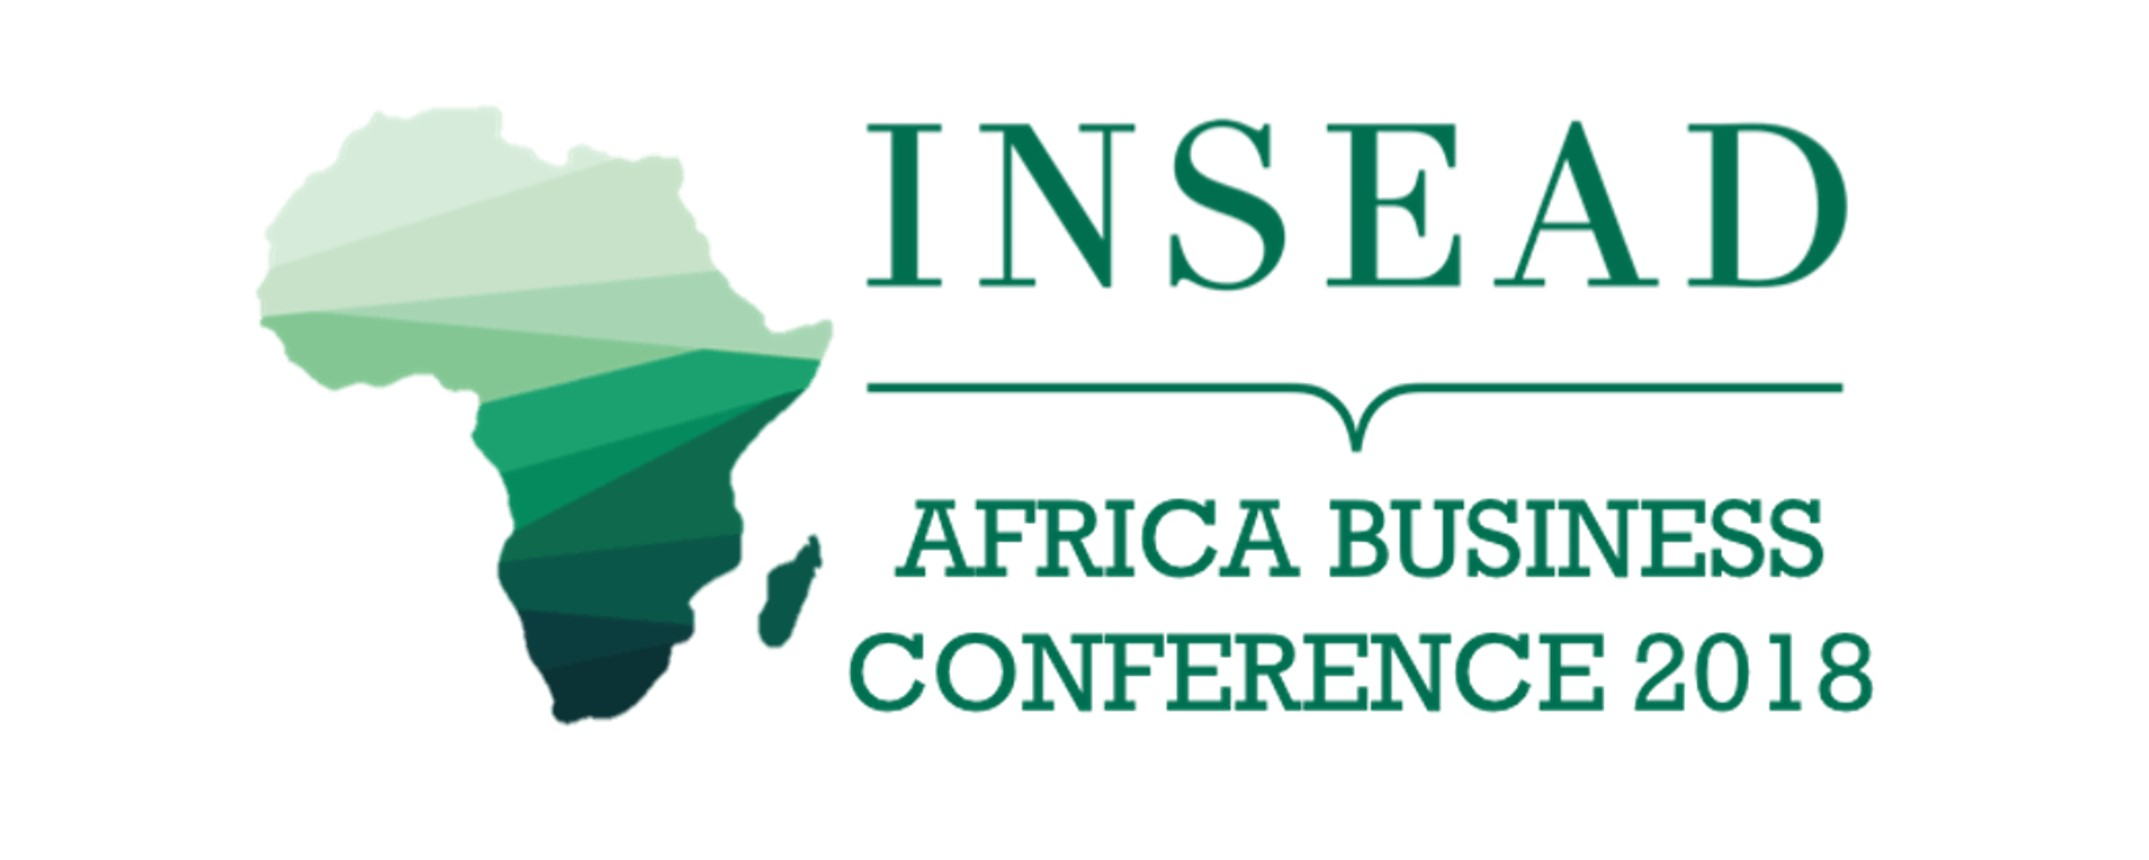 INSEAD Africa Club - INSEAD Africa Business Conference: Harnessing the African Potential - From Ideas To Action Movemeback African event cover image